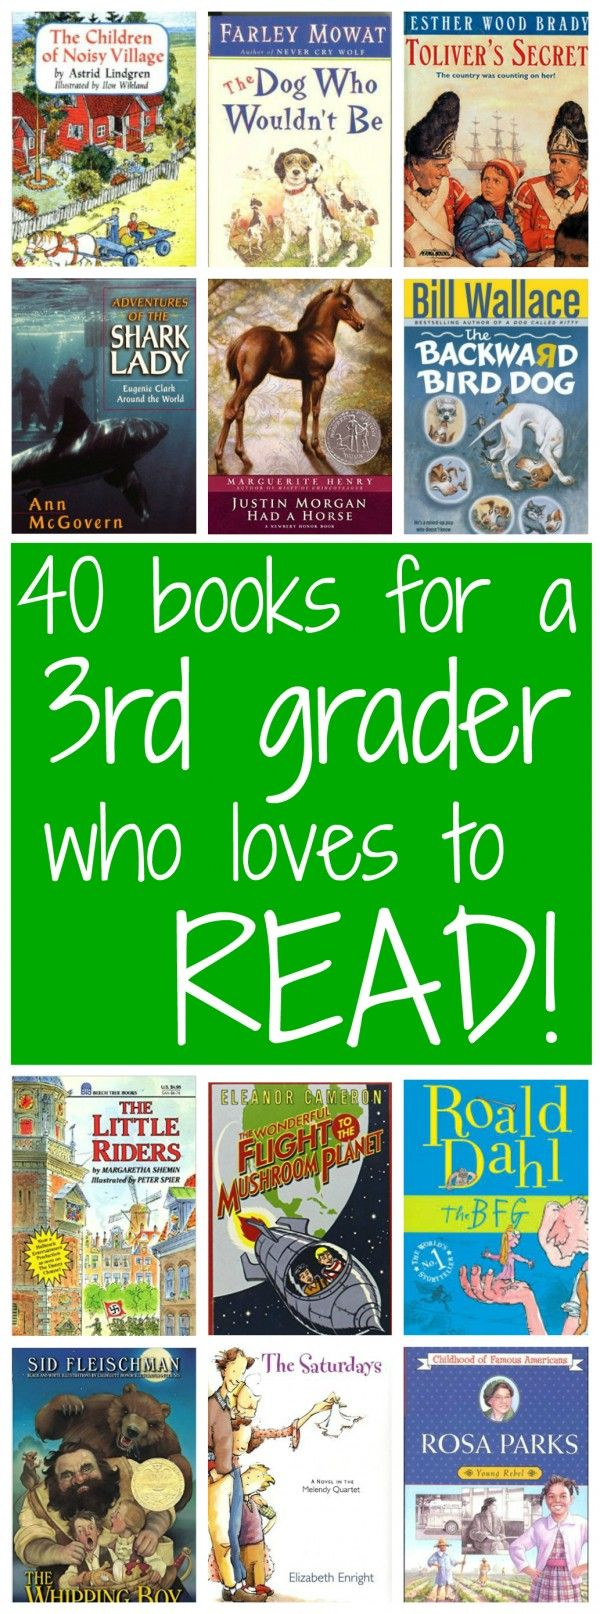 Reading list for a voracious 3rd grade reader from Walking by the Way